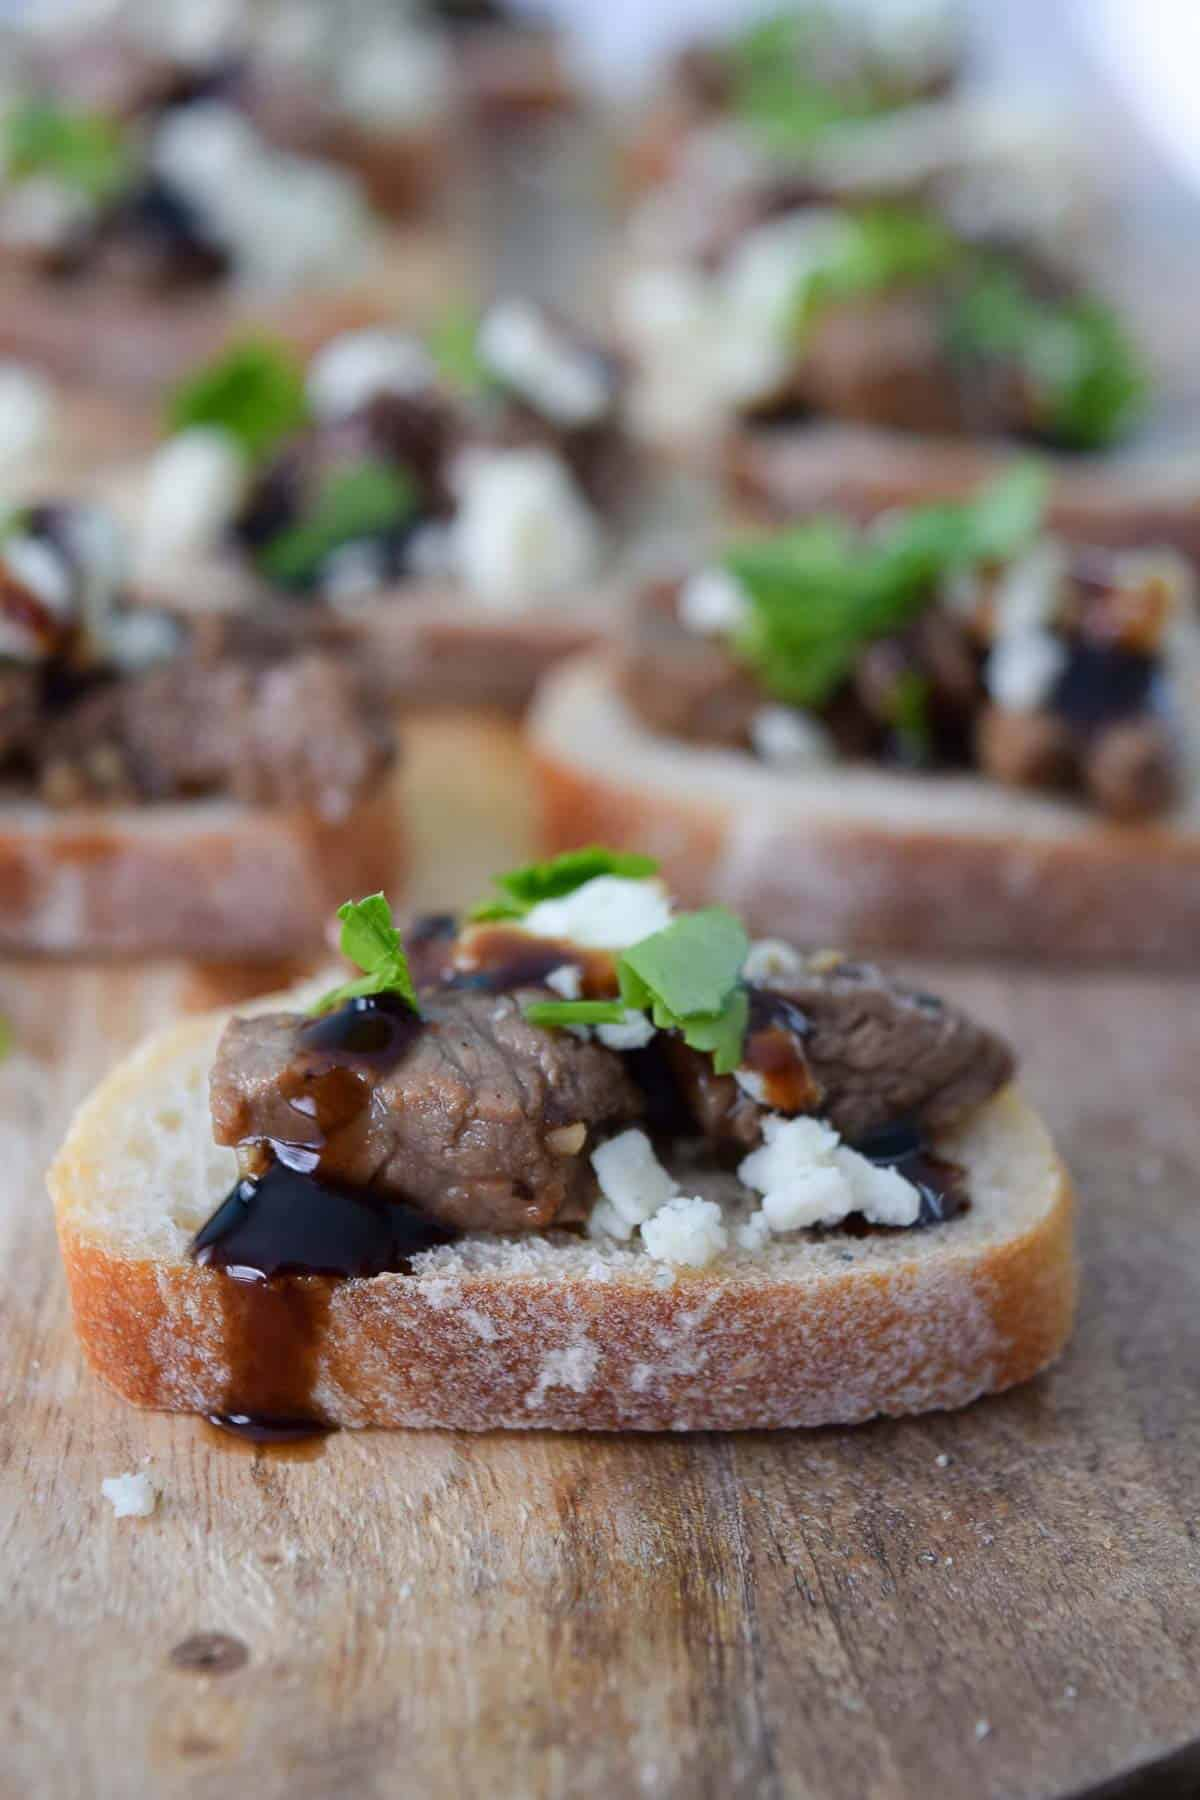 Blue Cheese and Steak Crostini topped with parsley close up side view